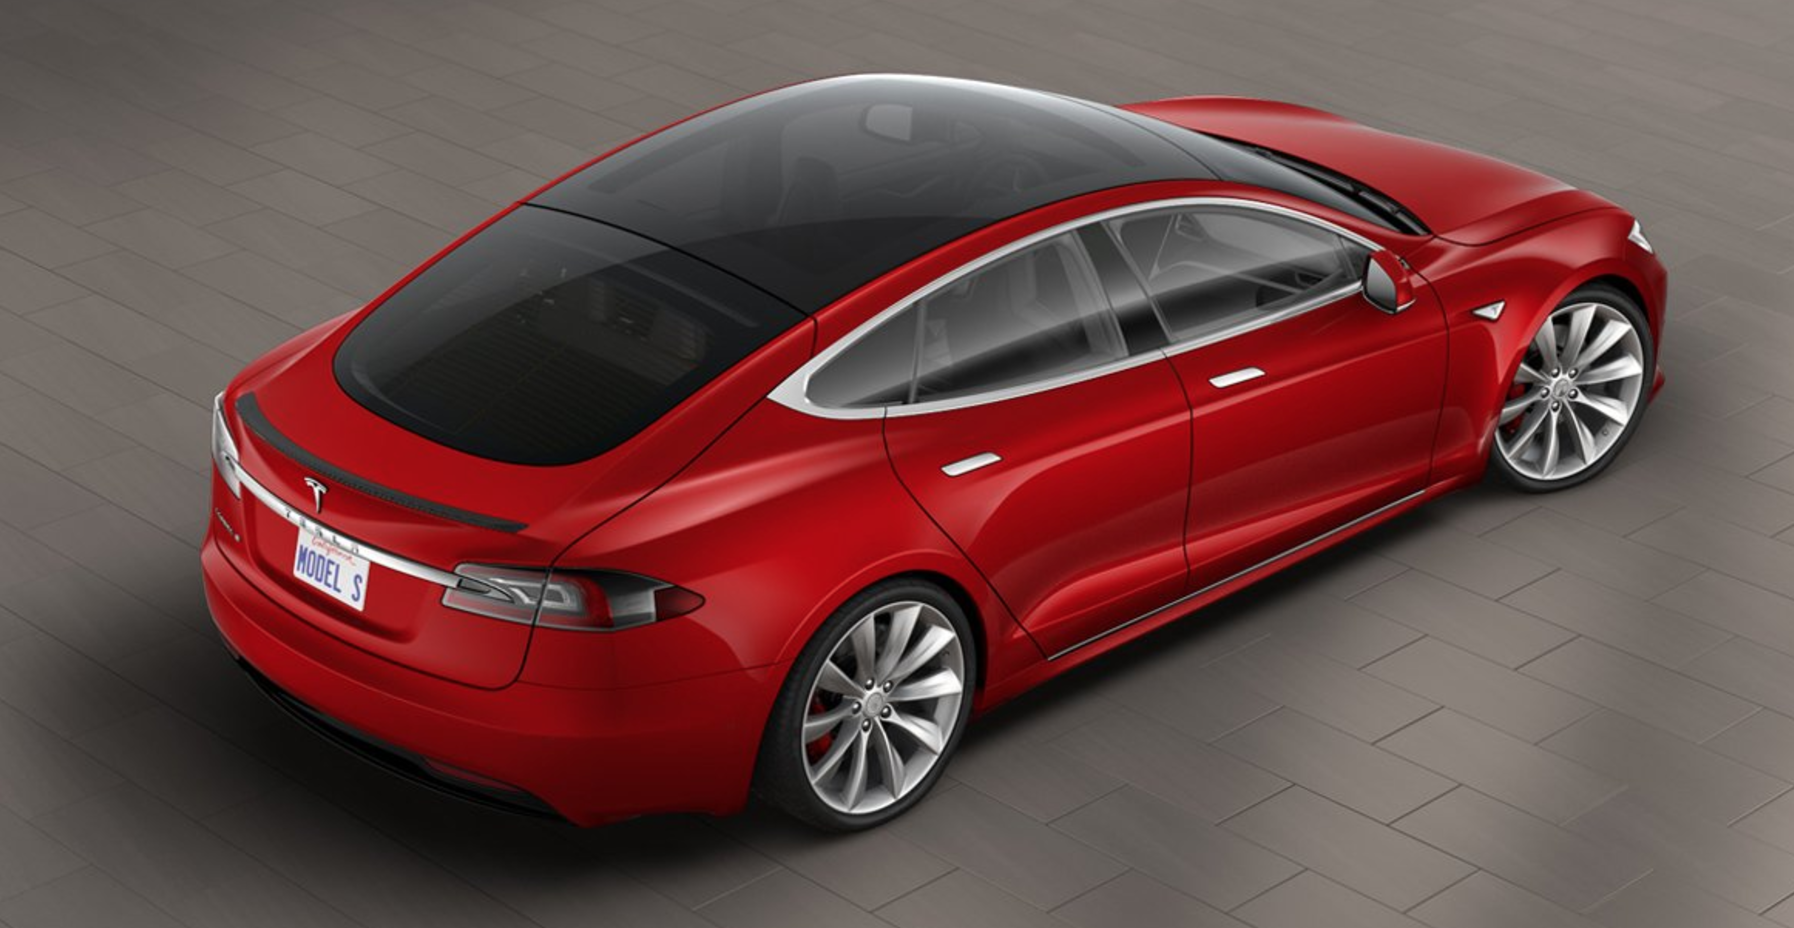 Tesla's new glass roof option for Model S